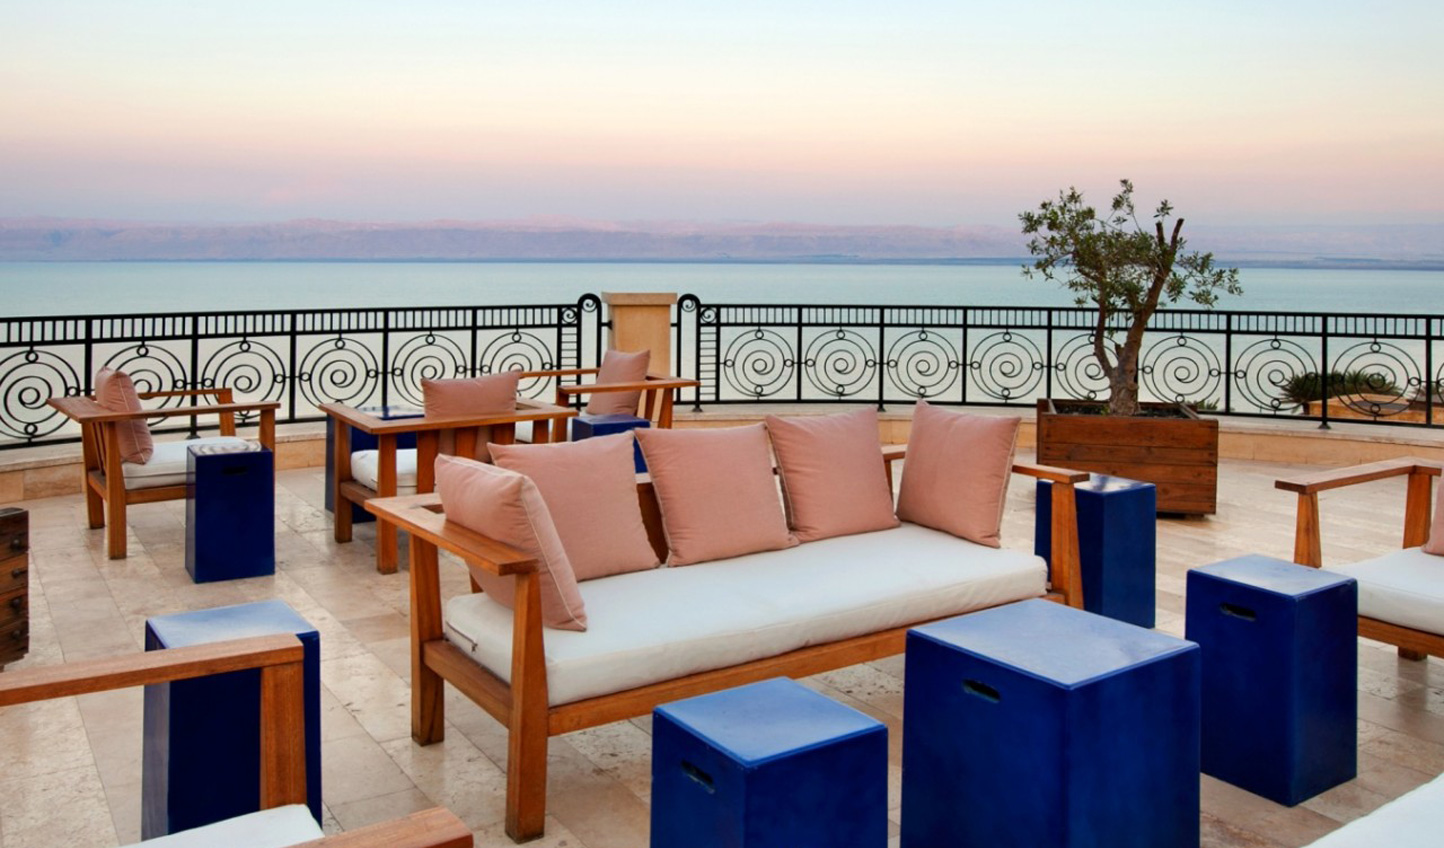 Wash off the salt and catch the sunset from Kempinski Hotel Ishtar